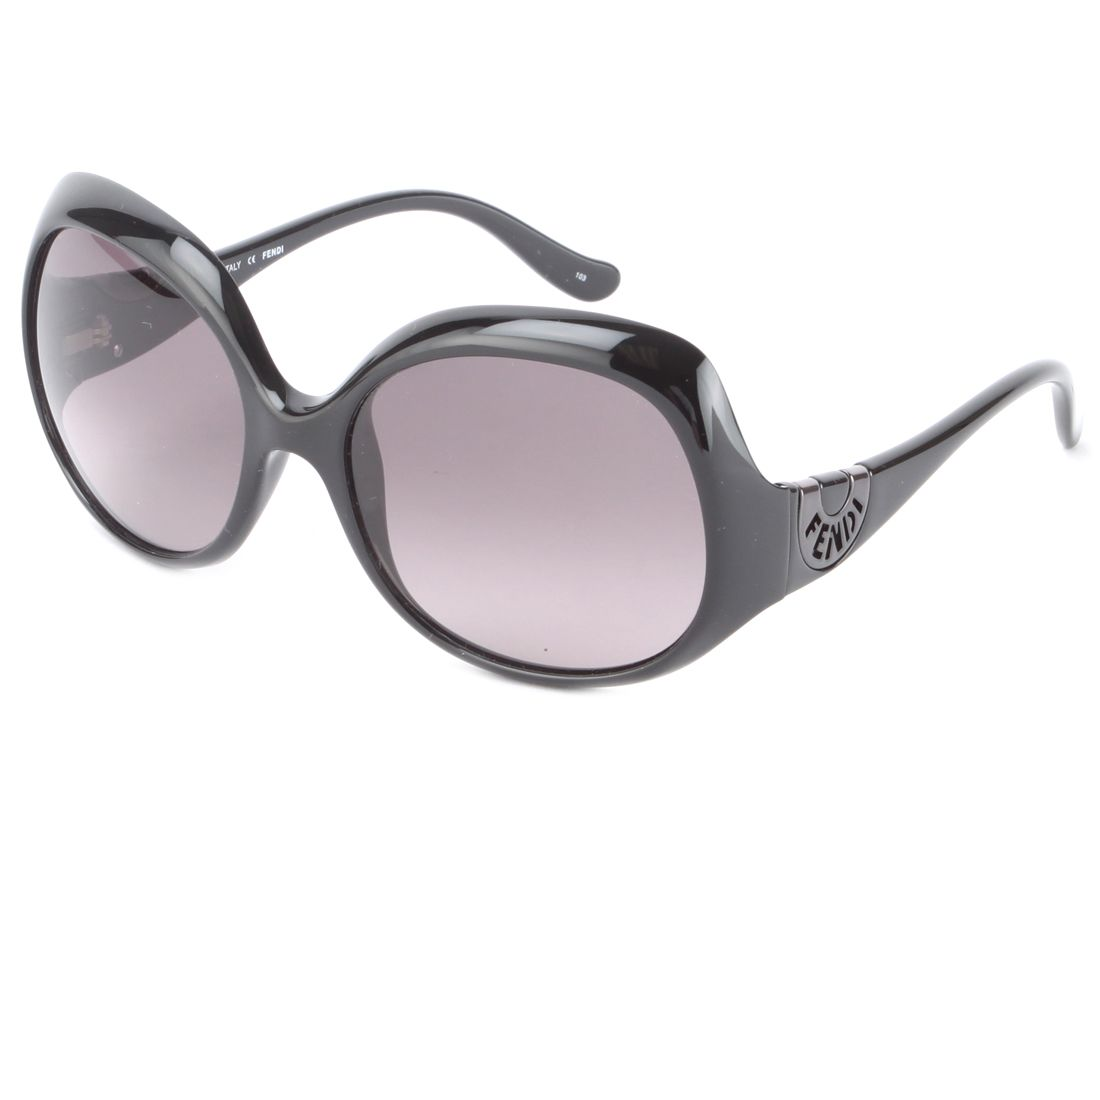 Fendi S 5143 Sunglasses-Black - My collection from top #designers